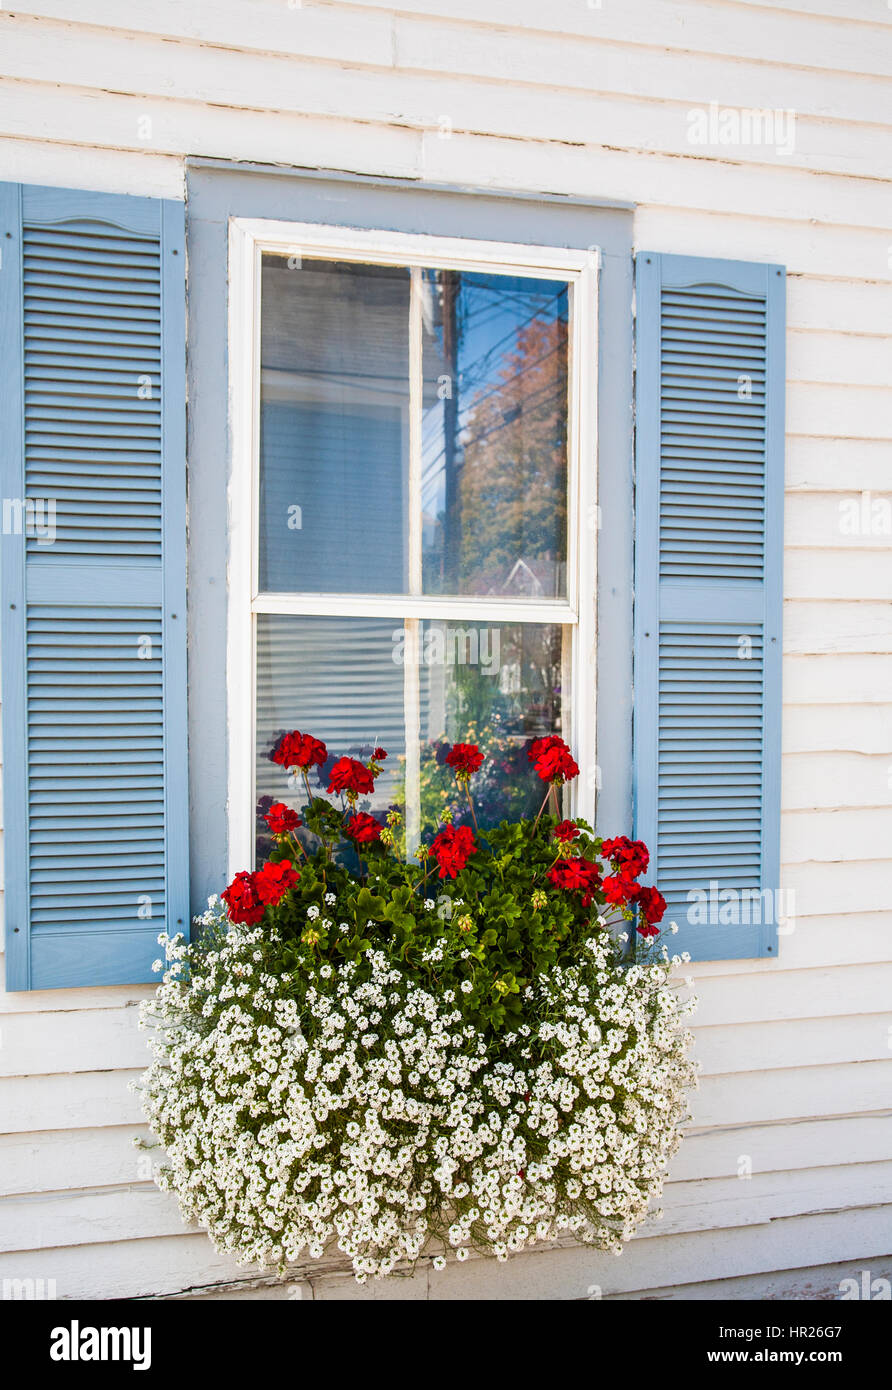 Vintage house window with blue shutters and a windowbox planter with red geraniums flowers and snowflake flowers - Stock Image